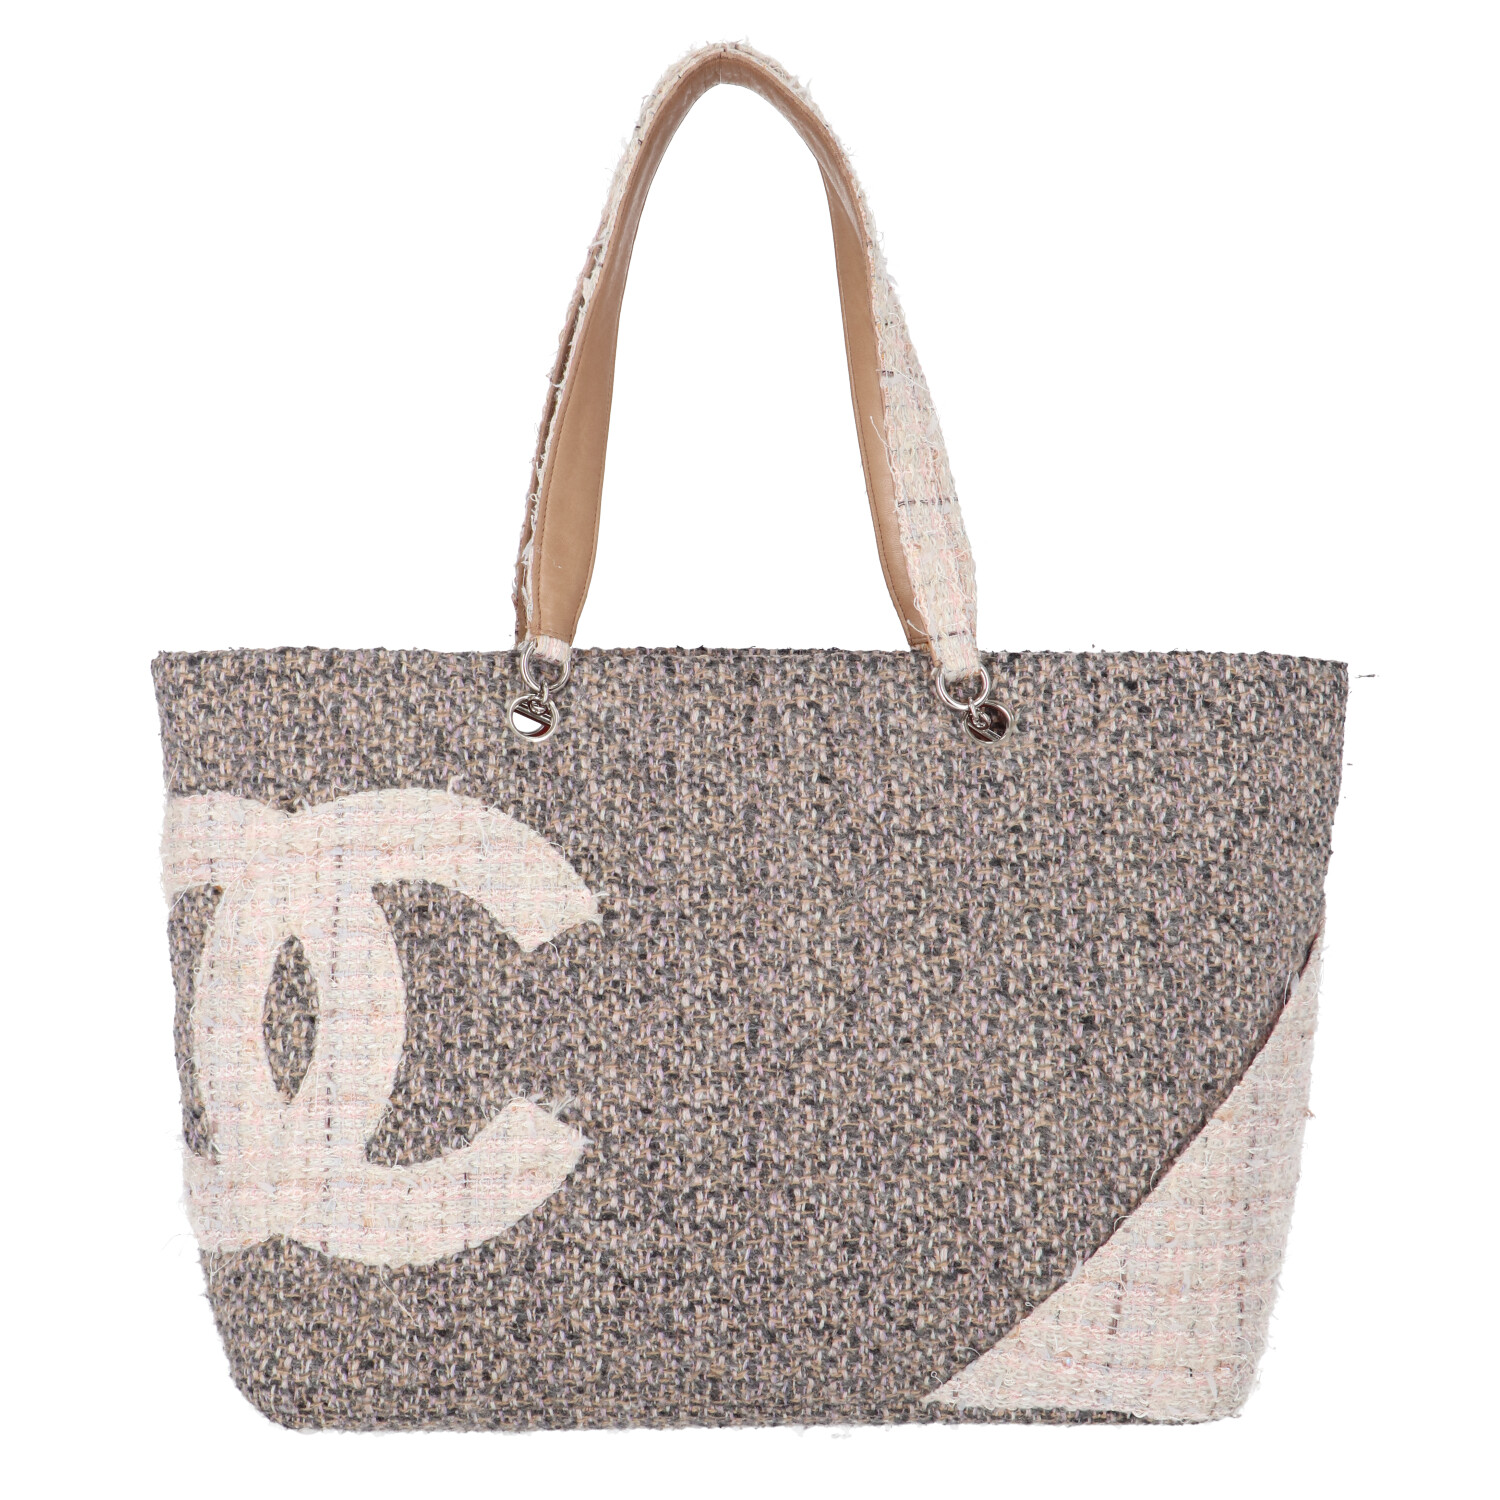 Chanel Beige and Grey Tweed Cambon Ligne Shopper